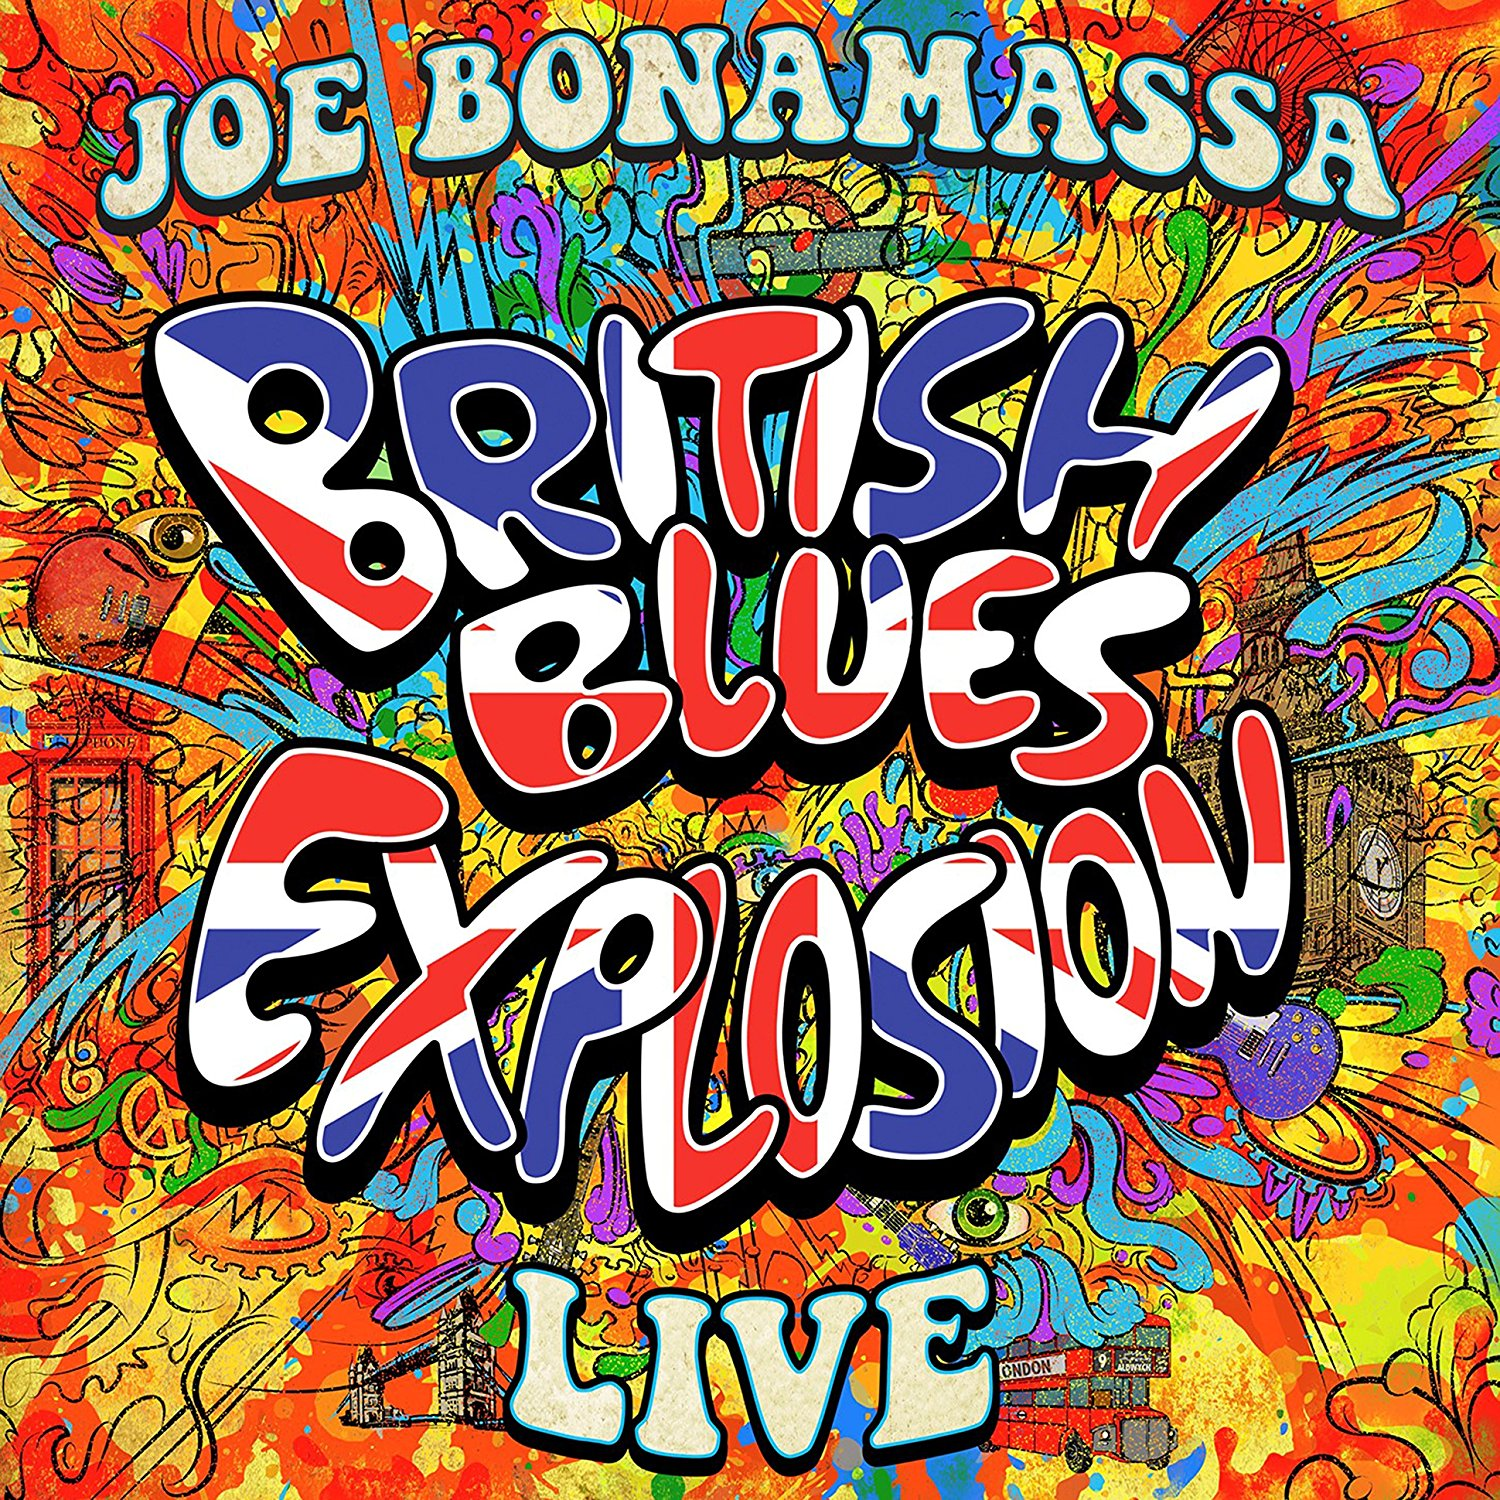 Joe Bonamassa - British Blues Explosion Live [3LP]